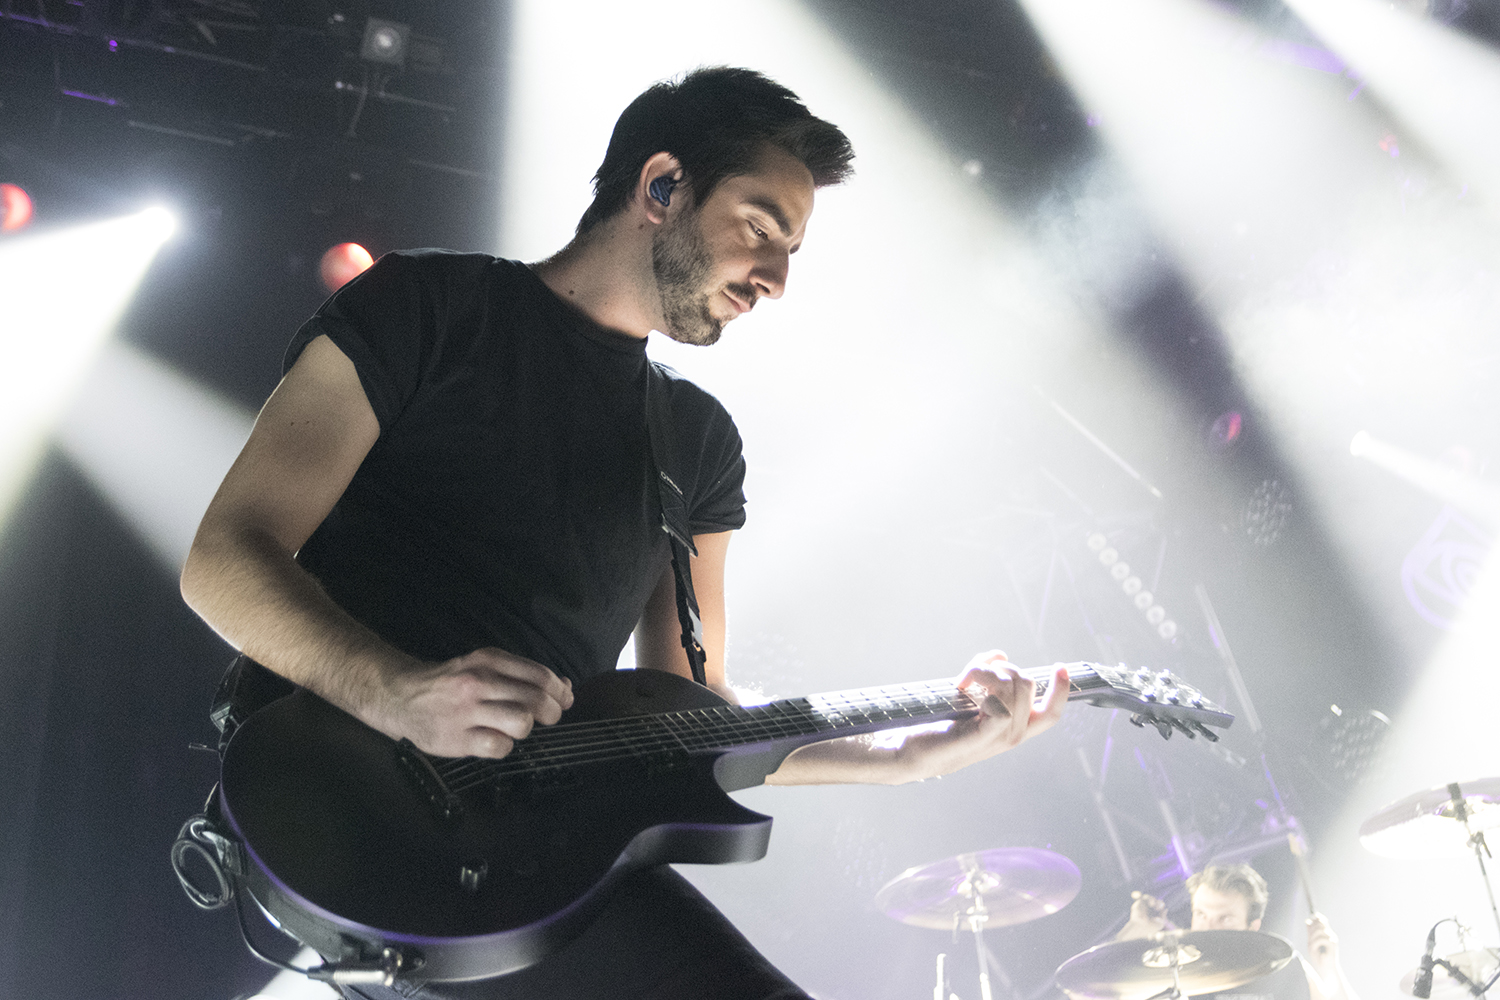 all-time-low_05042017_melkweg-amsterdam_door-kevin-knipping-2